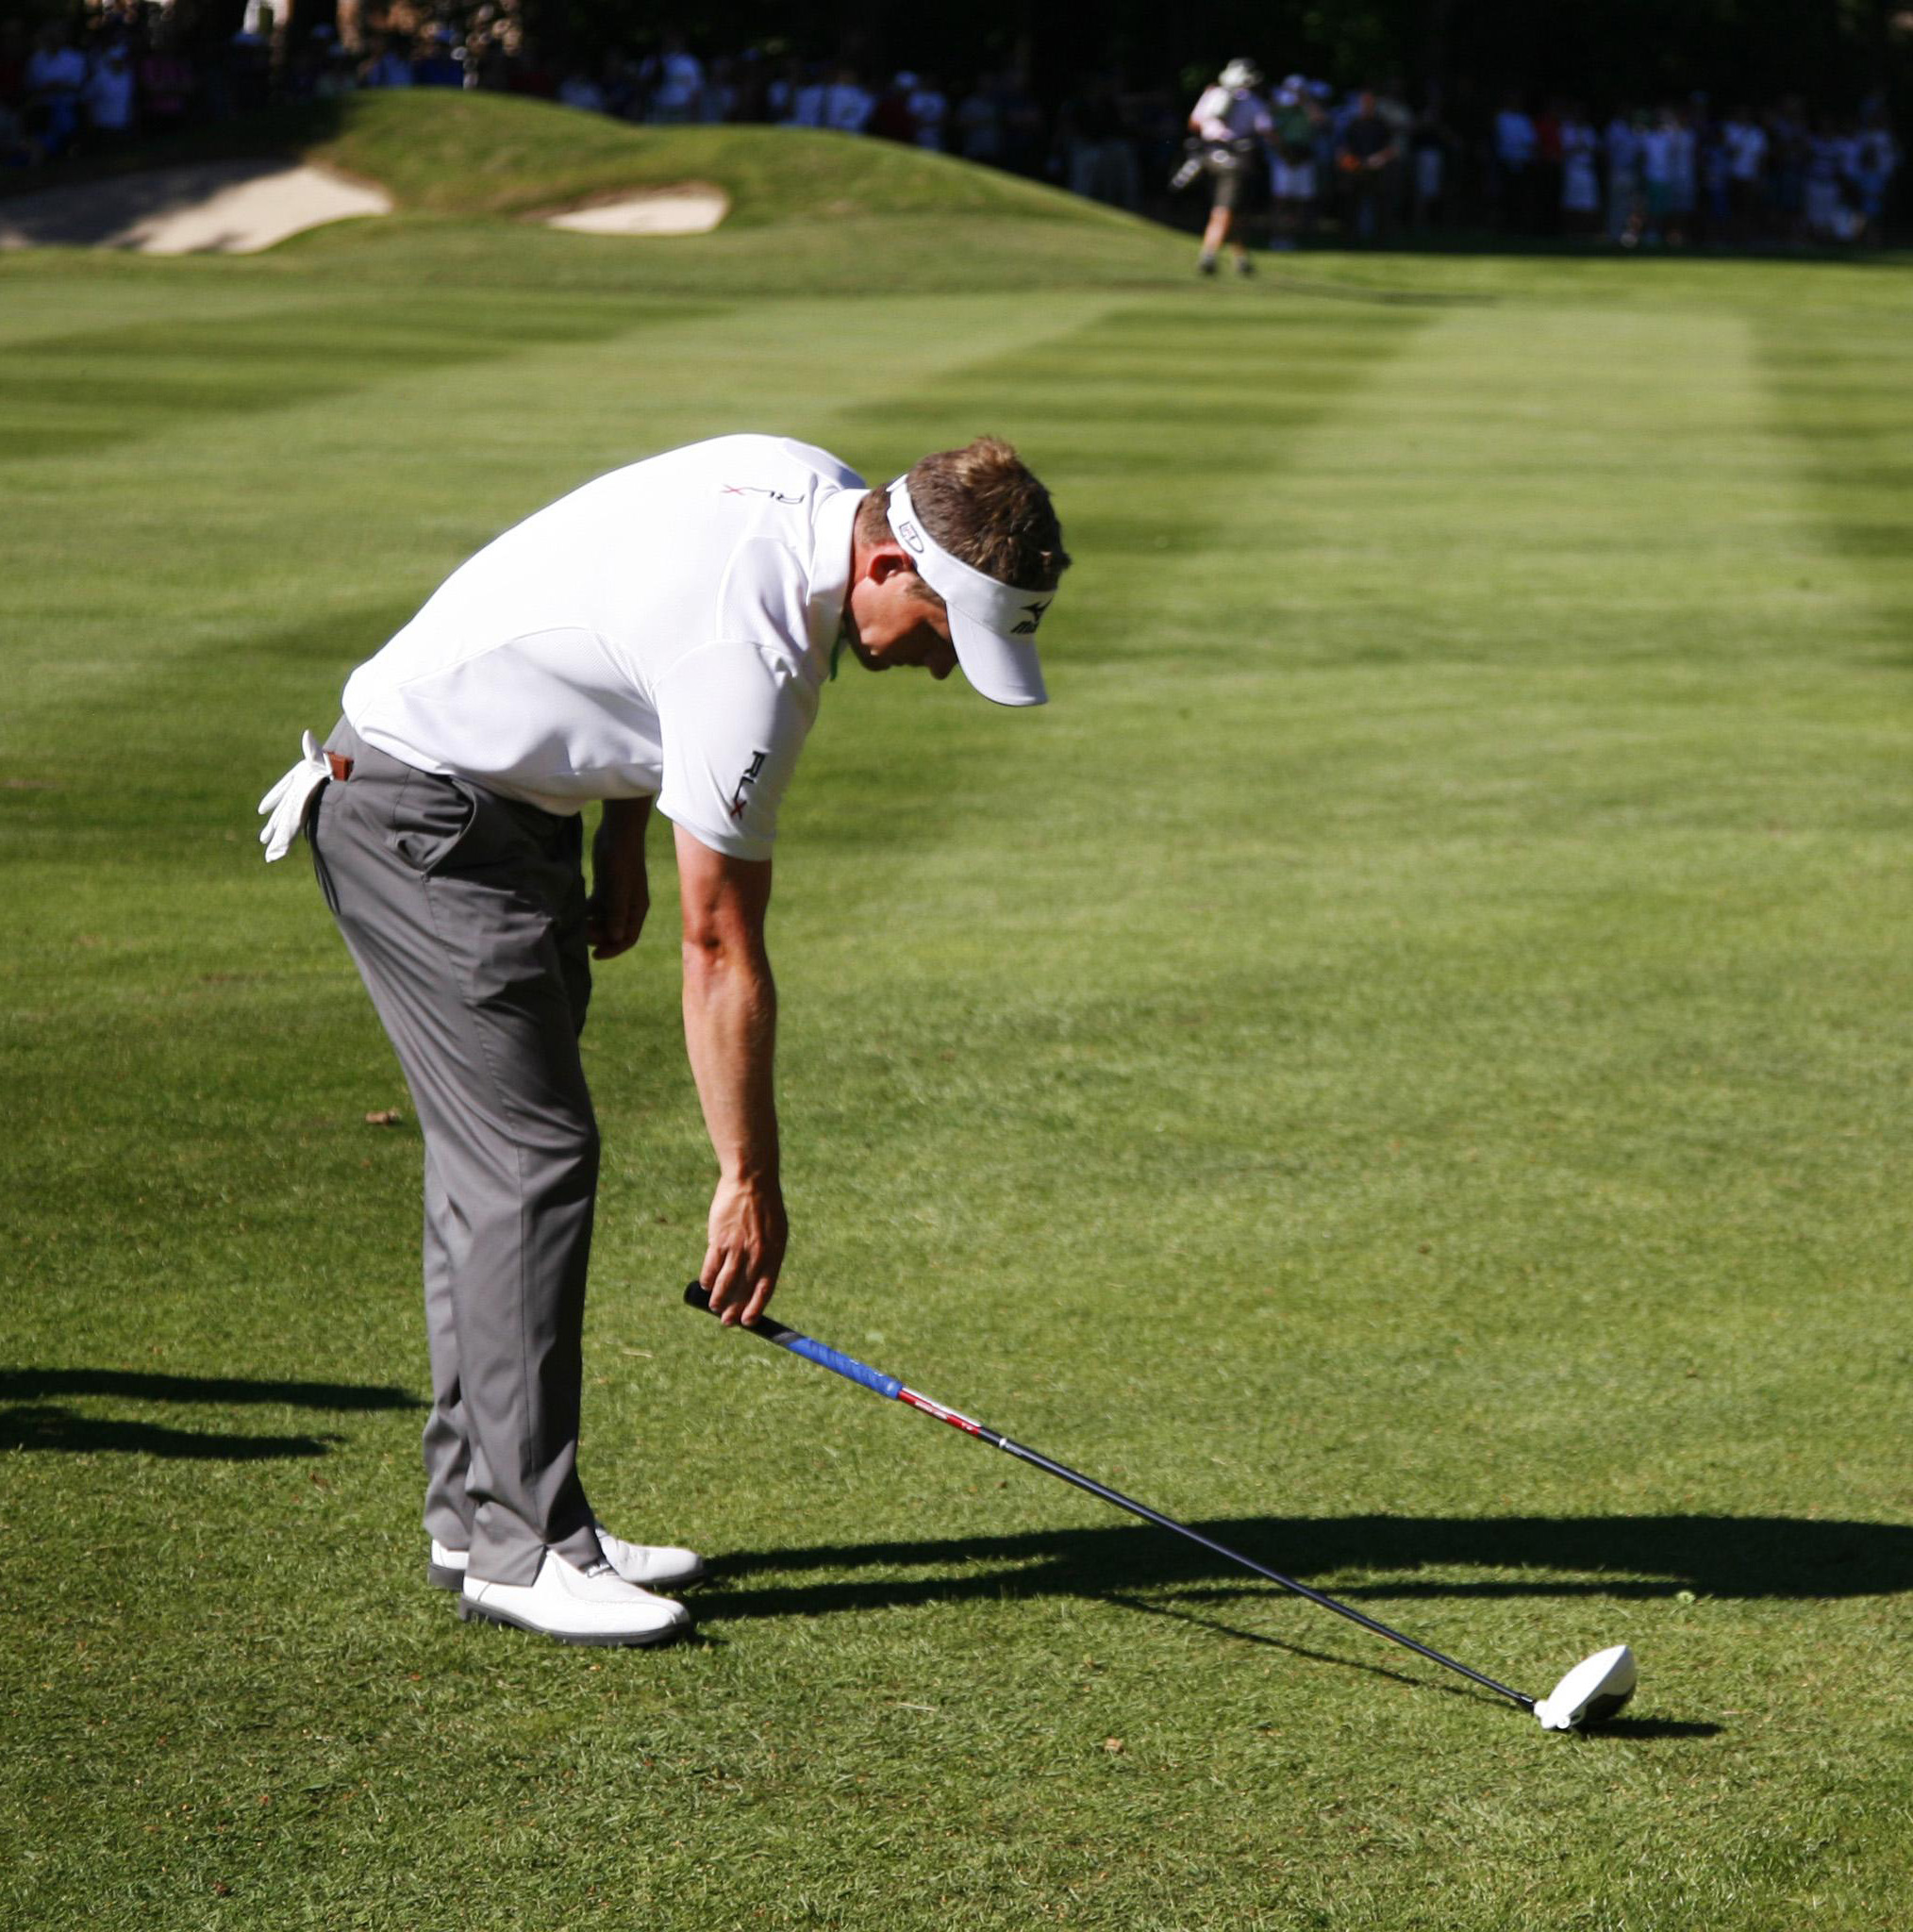 Luke Donald taking a two-club-length drop after going into a water hazard